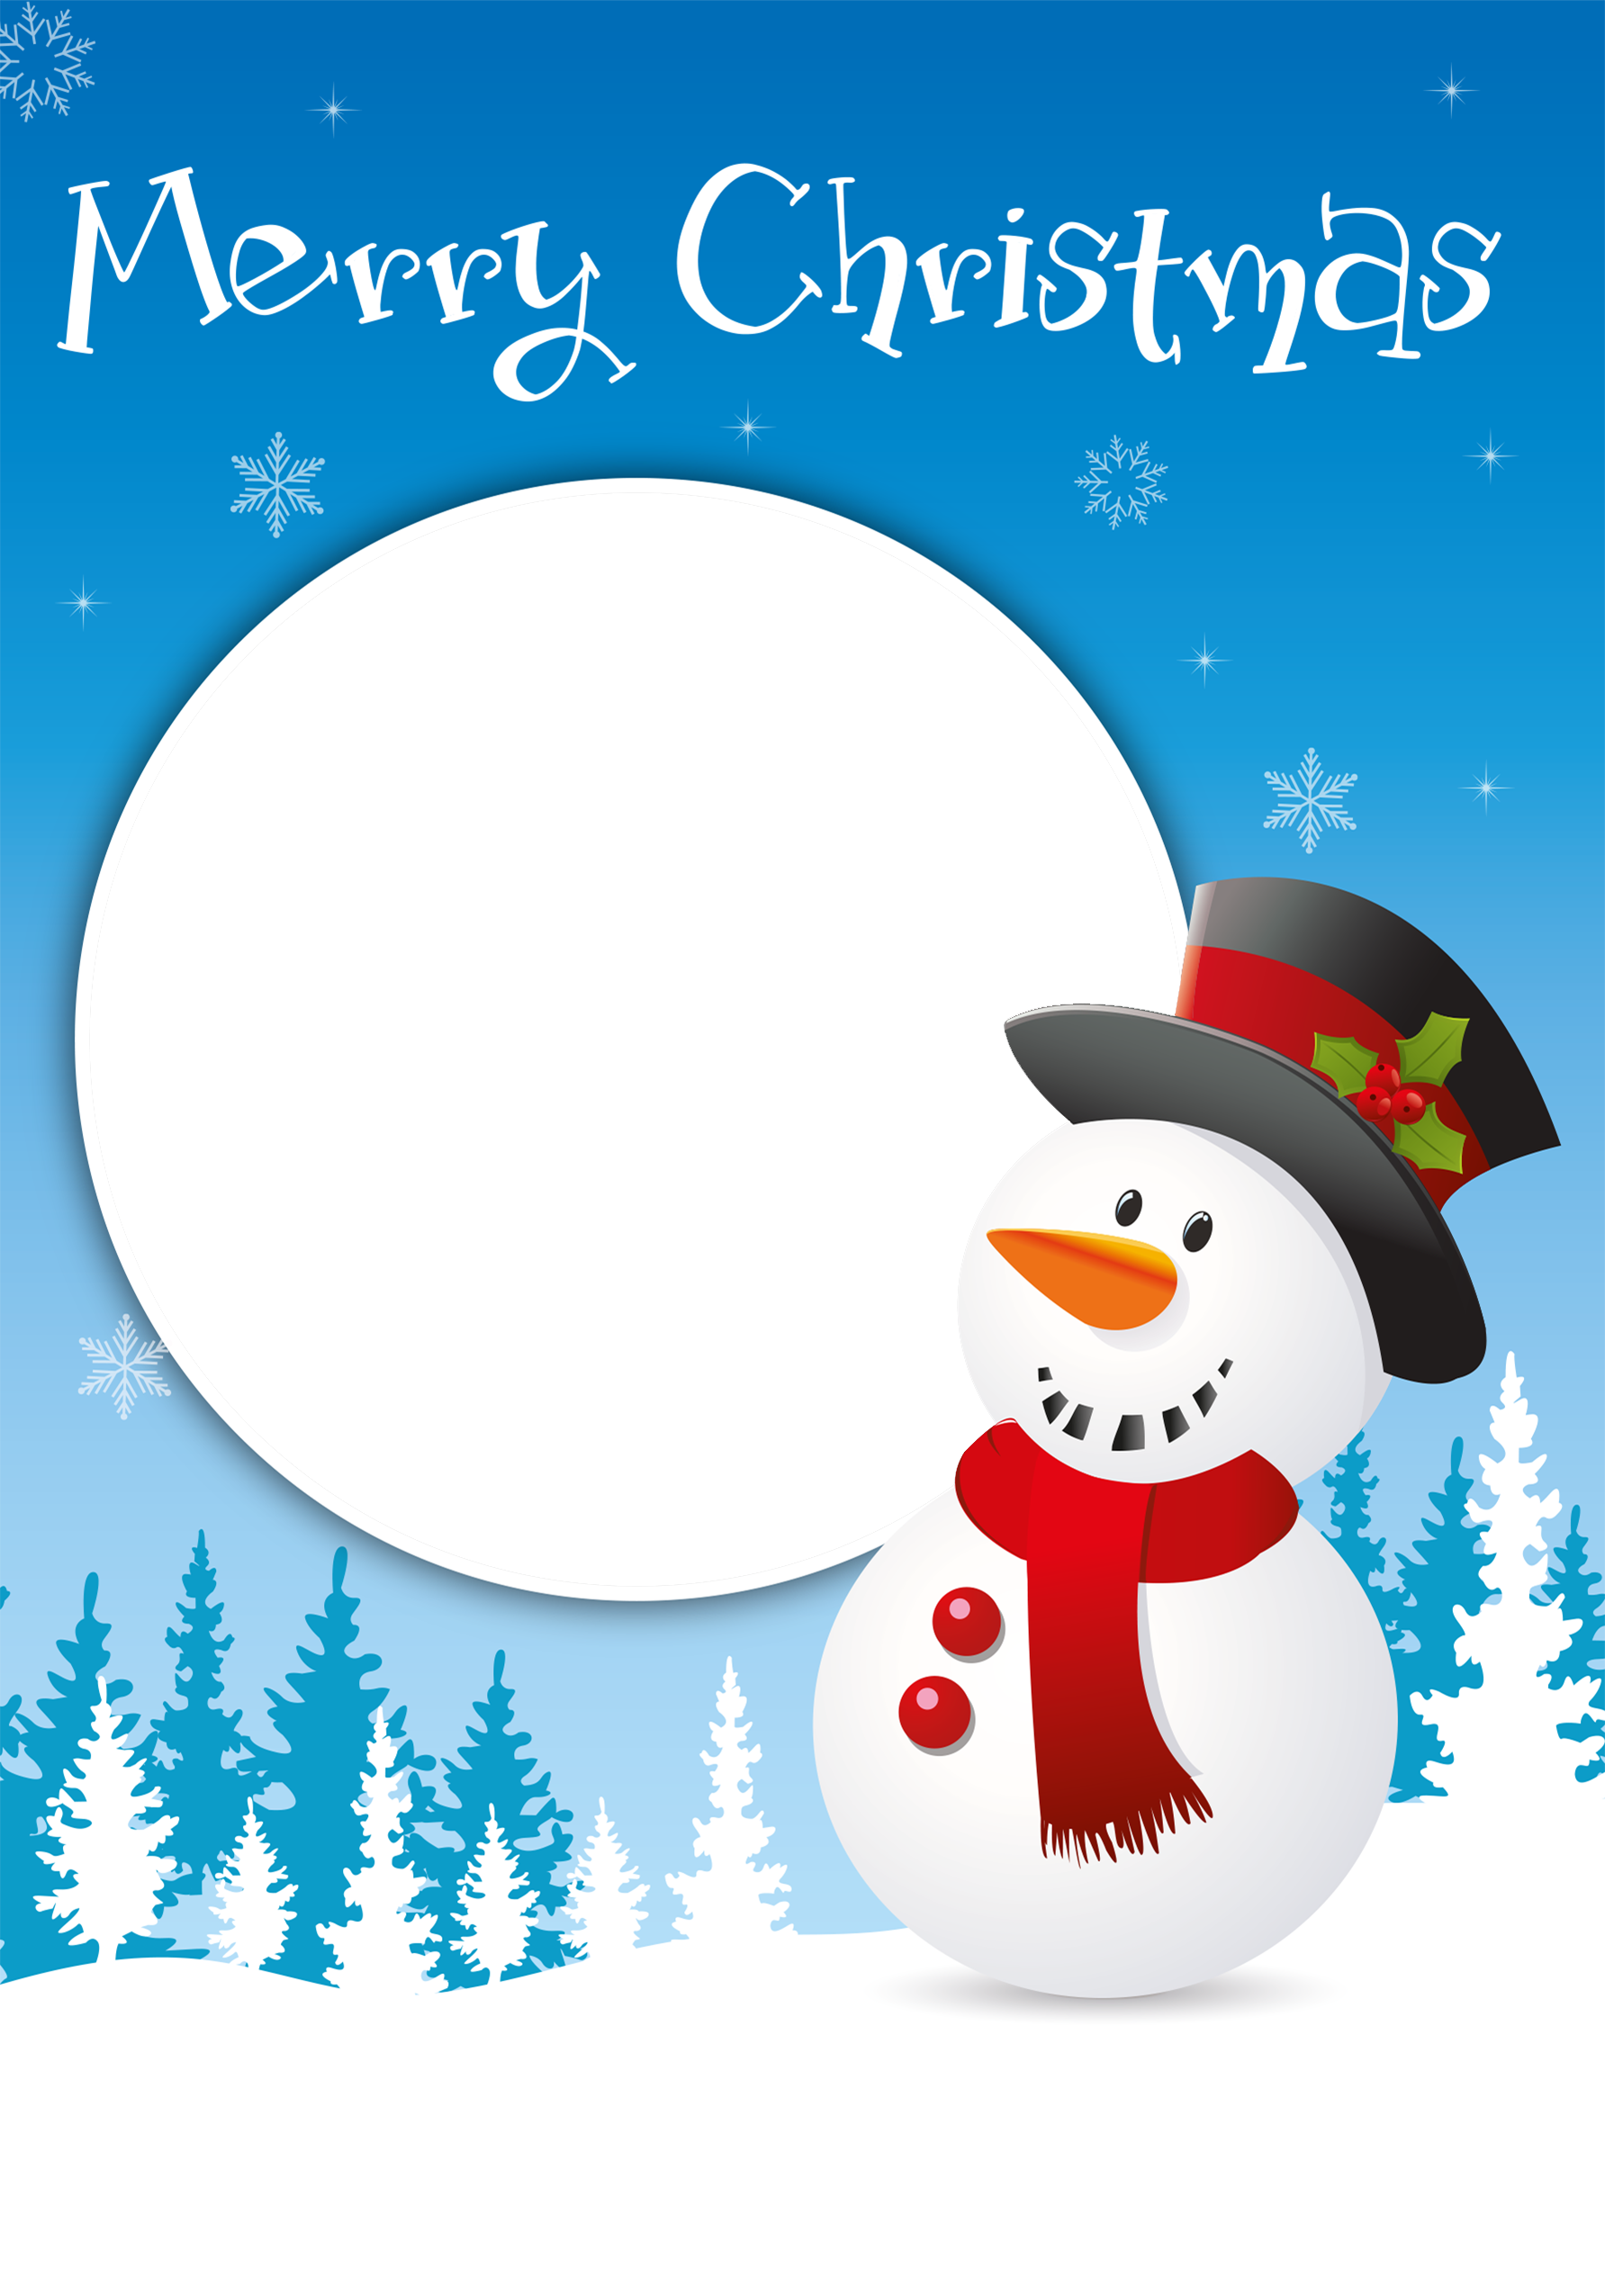 Upload Your Own Image Snowman Christmas Card | A5 in Size